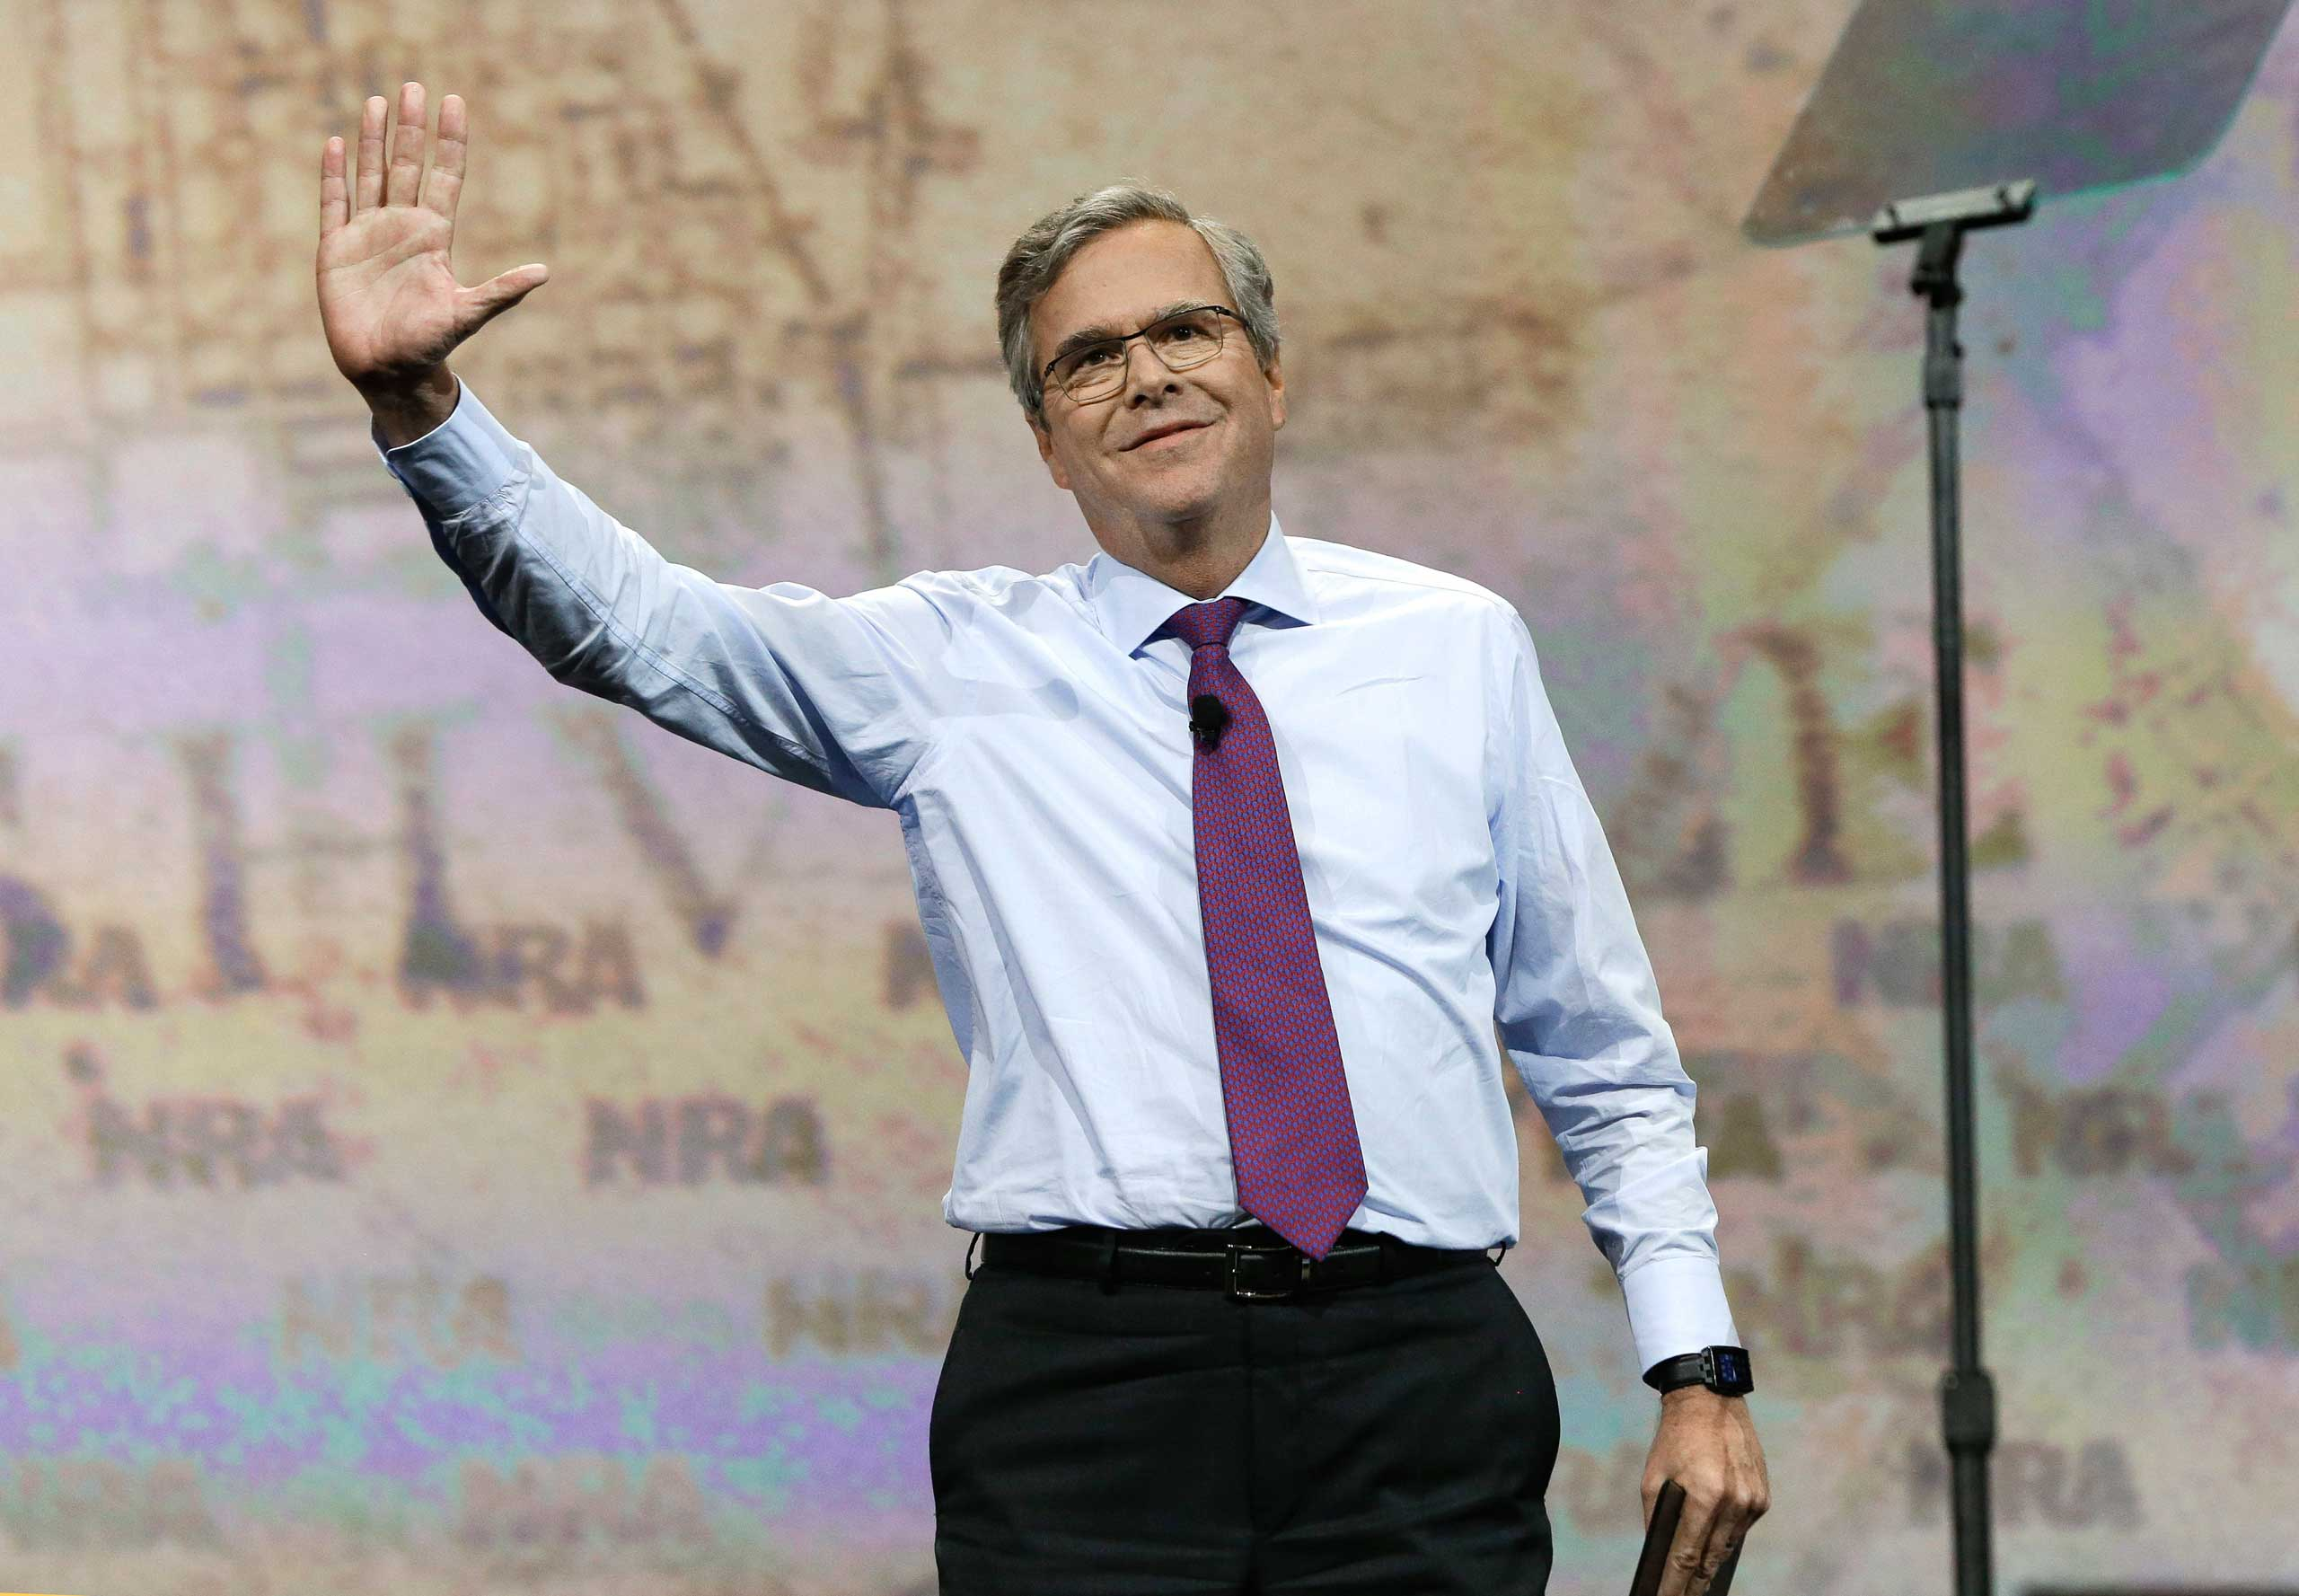 Former Florida Gov. Jeb Bush speaks at the National Rifle Association convention in Nashville on April 10, 2015.